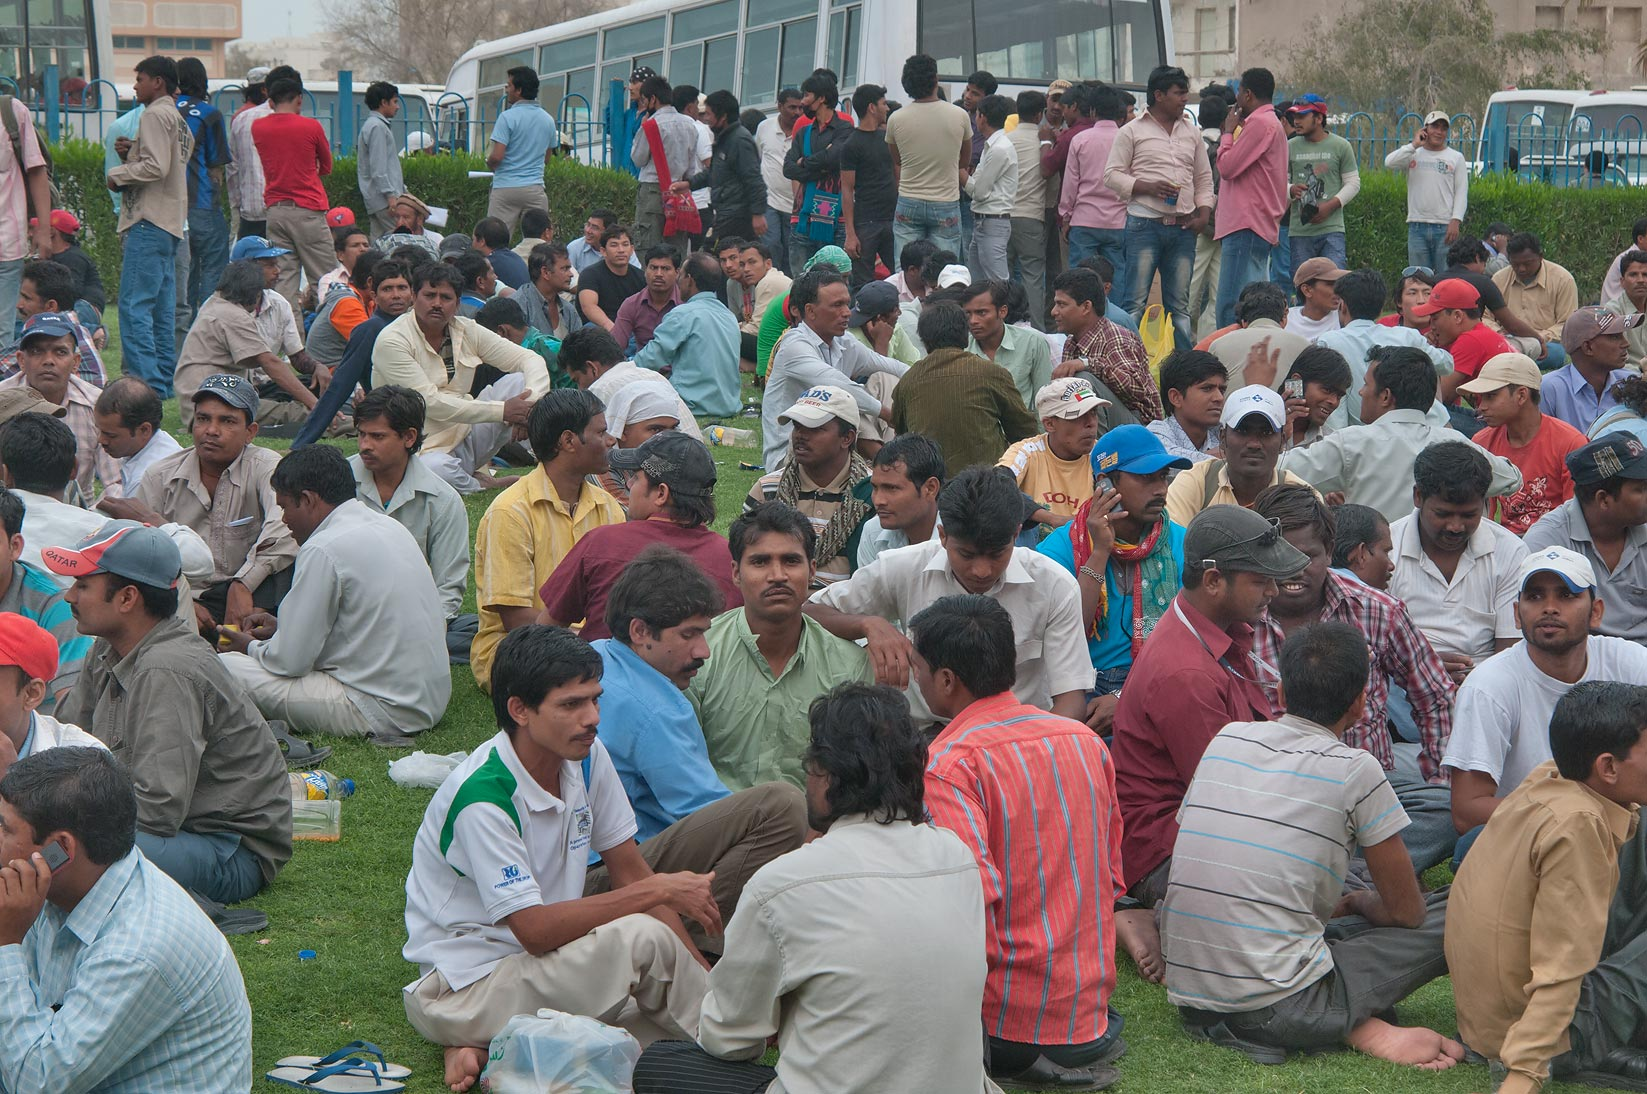 Migrant workers crowding on a lawn on Friday...Bus Station Al Ghanim. Doha, Qatar